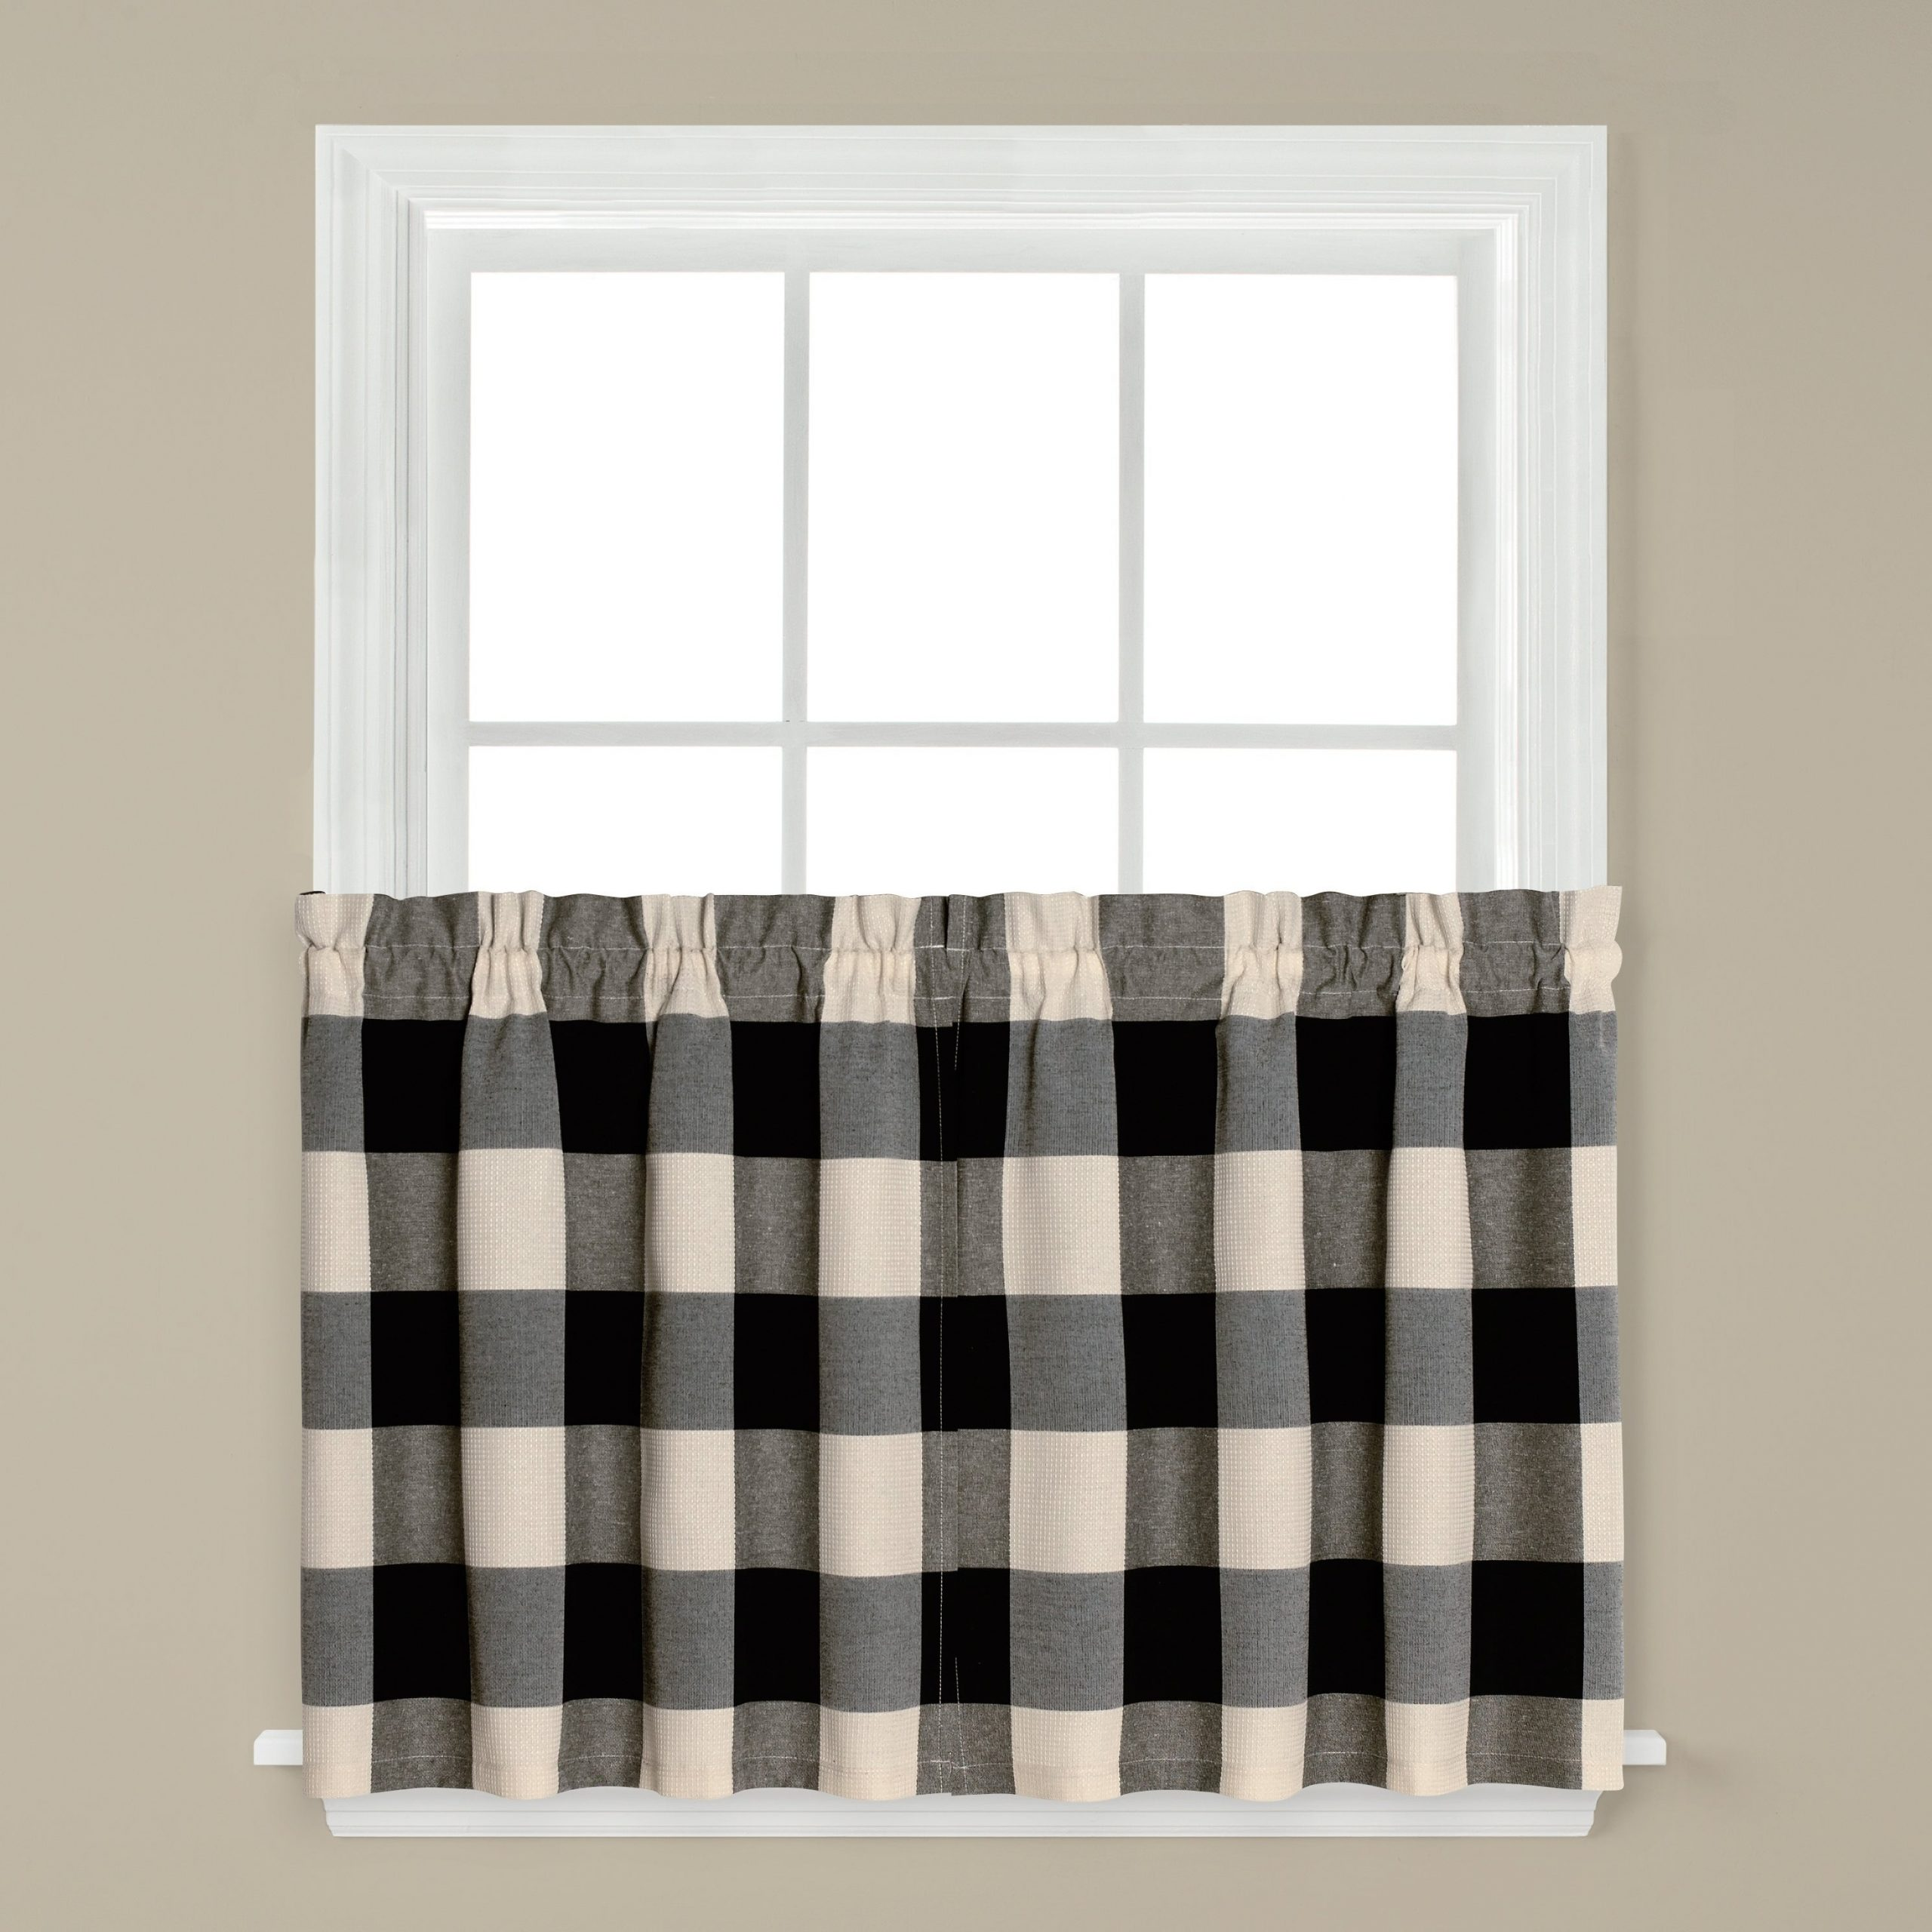 Buy Machine Wash Curtain Tiers Online At Overstock | Our for Dexter 24 Inch Tier Pairs In Green (Image 5 of 20)